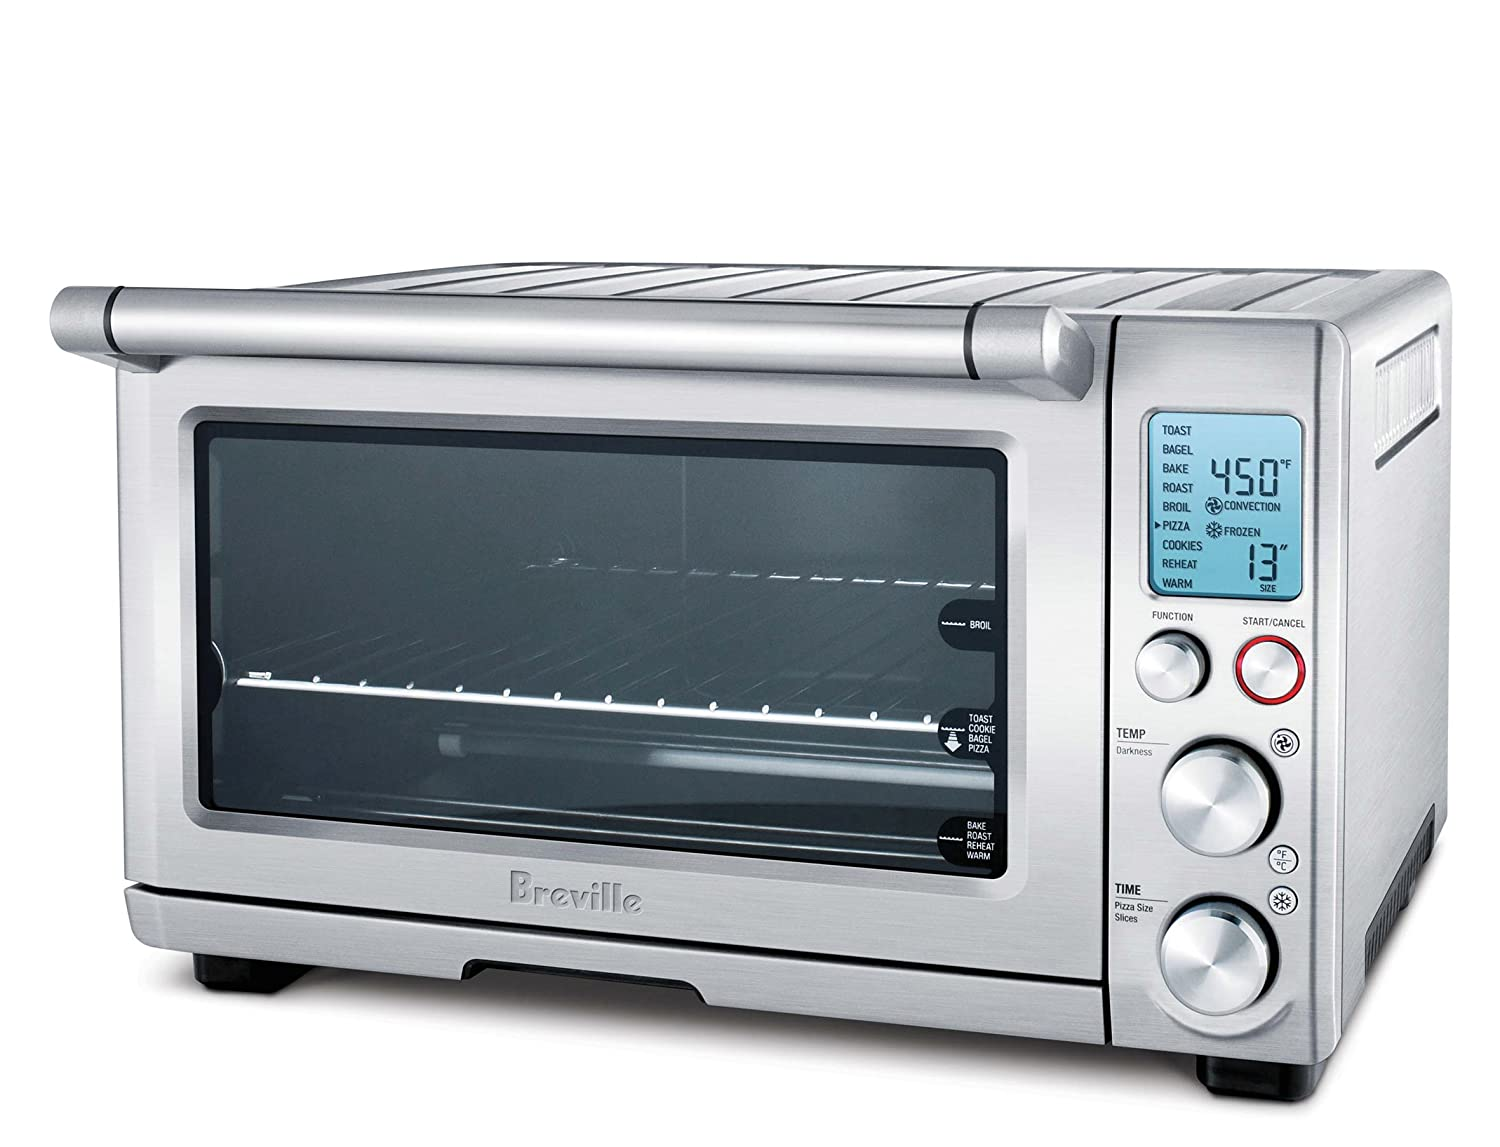 Breville BOV800XL Smart horno 1800 Watt convección tostadora Horno con Element IQ by kitchen ware: Amazon.es: Hogar